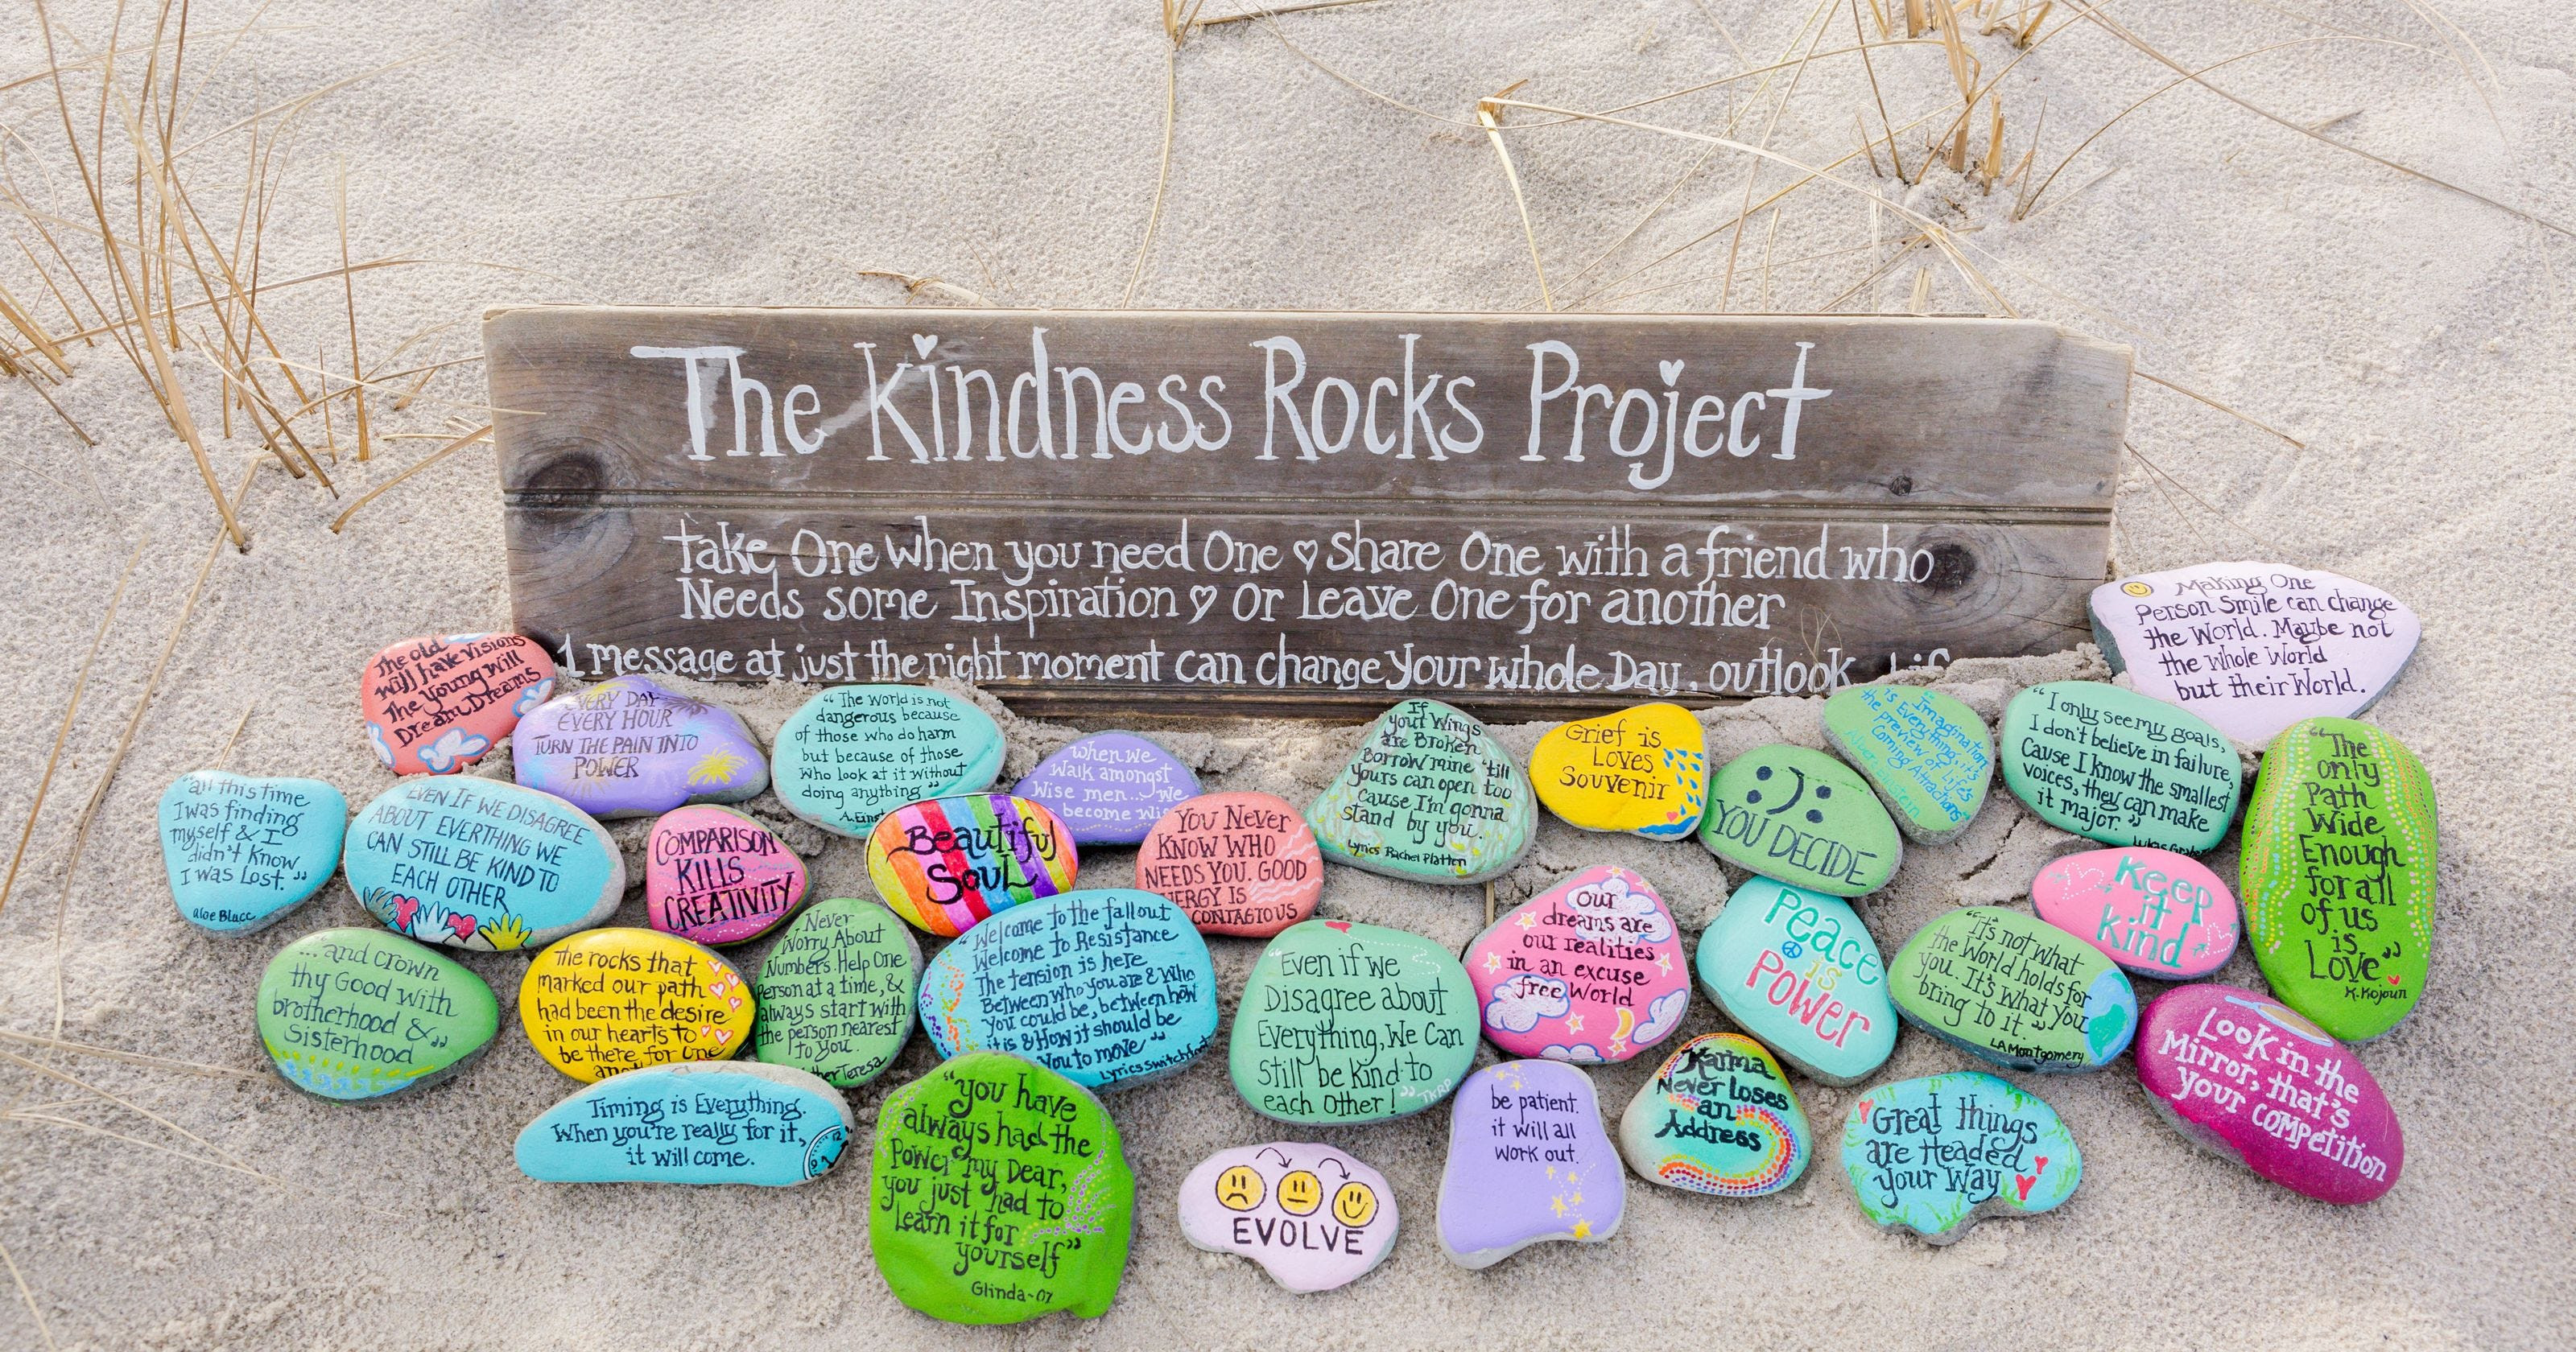 Kindness Rocks Quotes  It's not just a rock It's a project of kindness